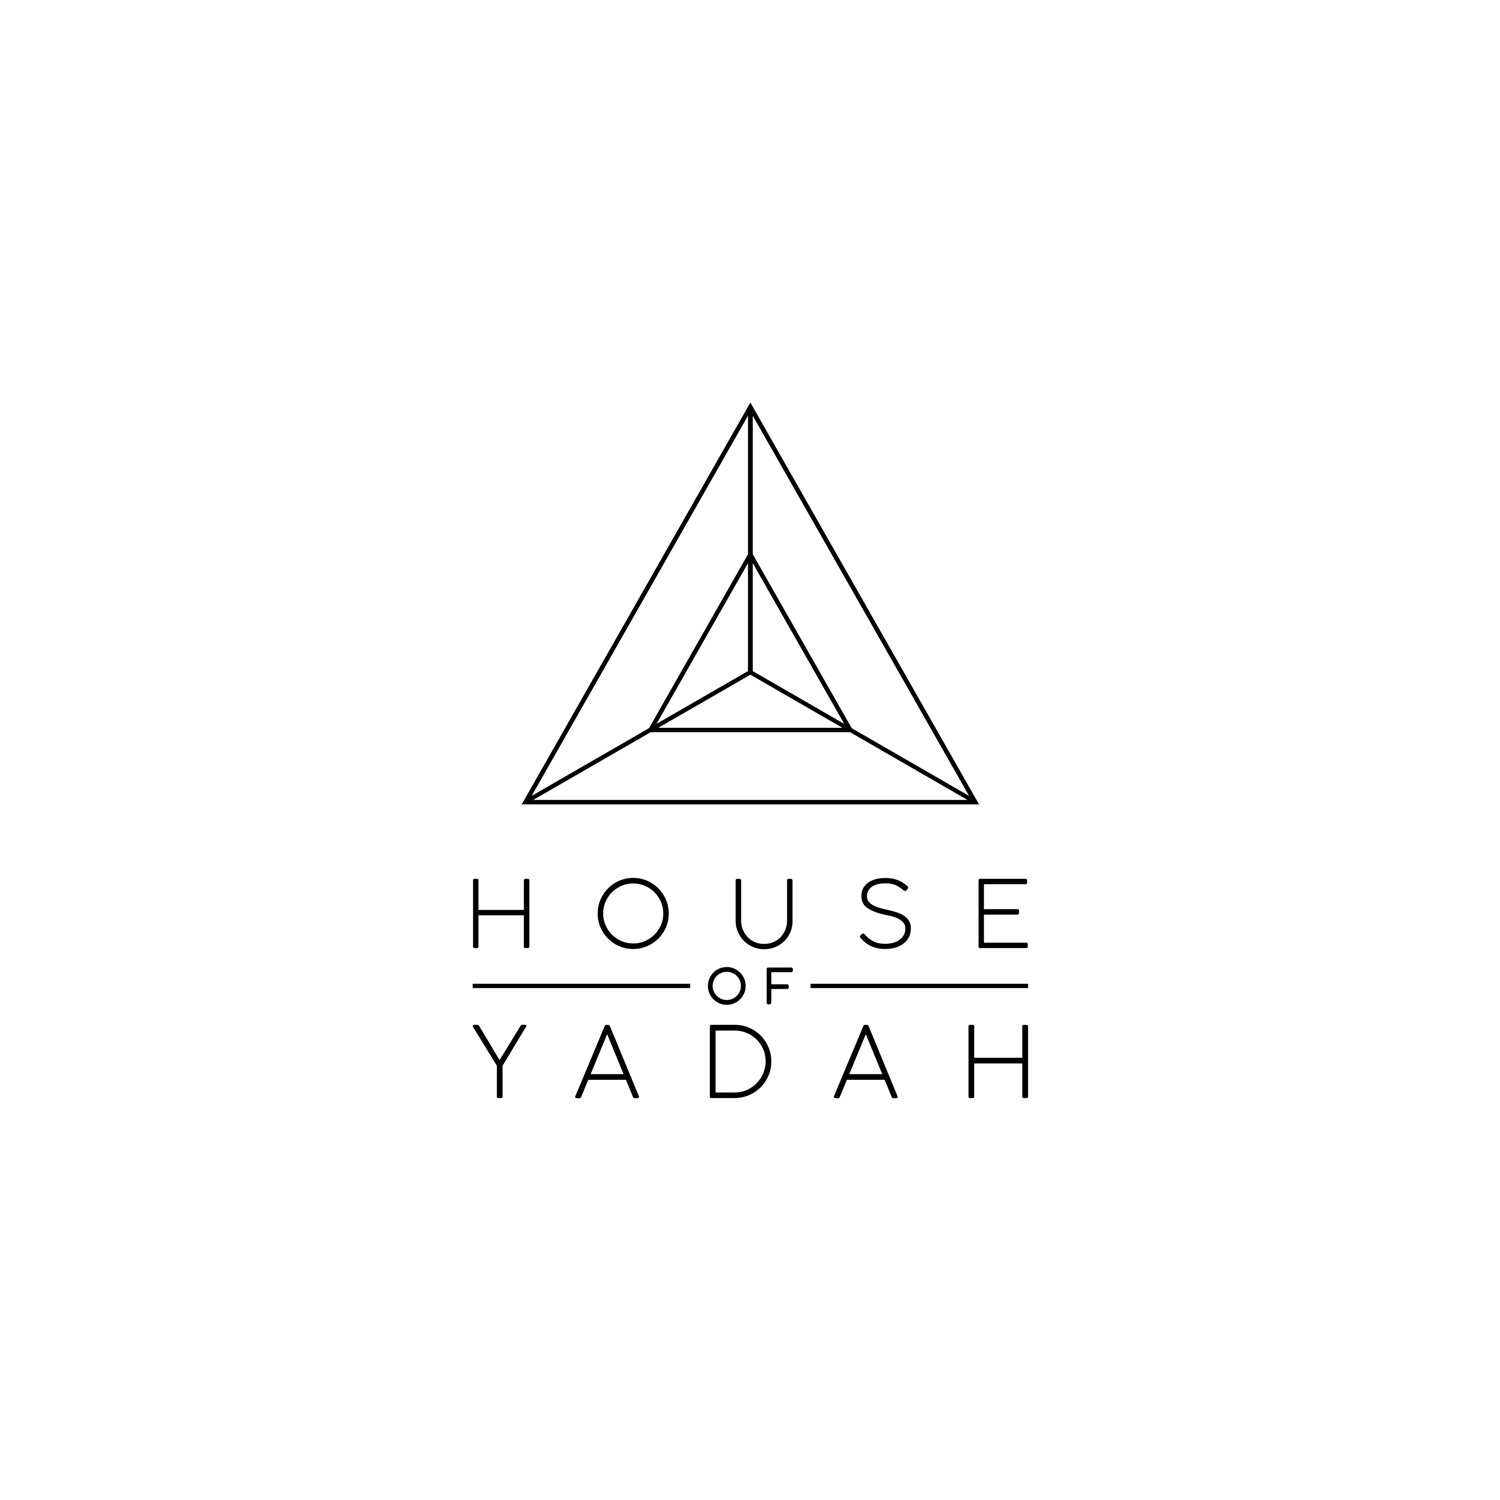 House of Yadah Logo Design by PUISI RAVEN